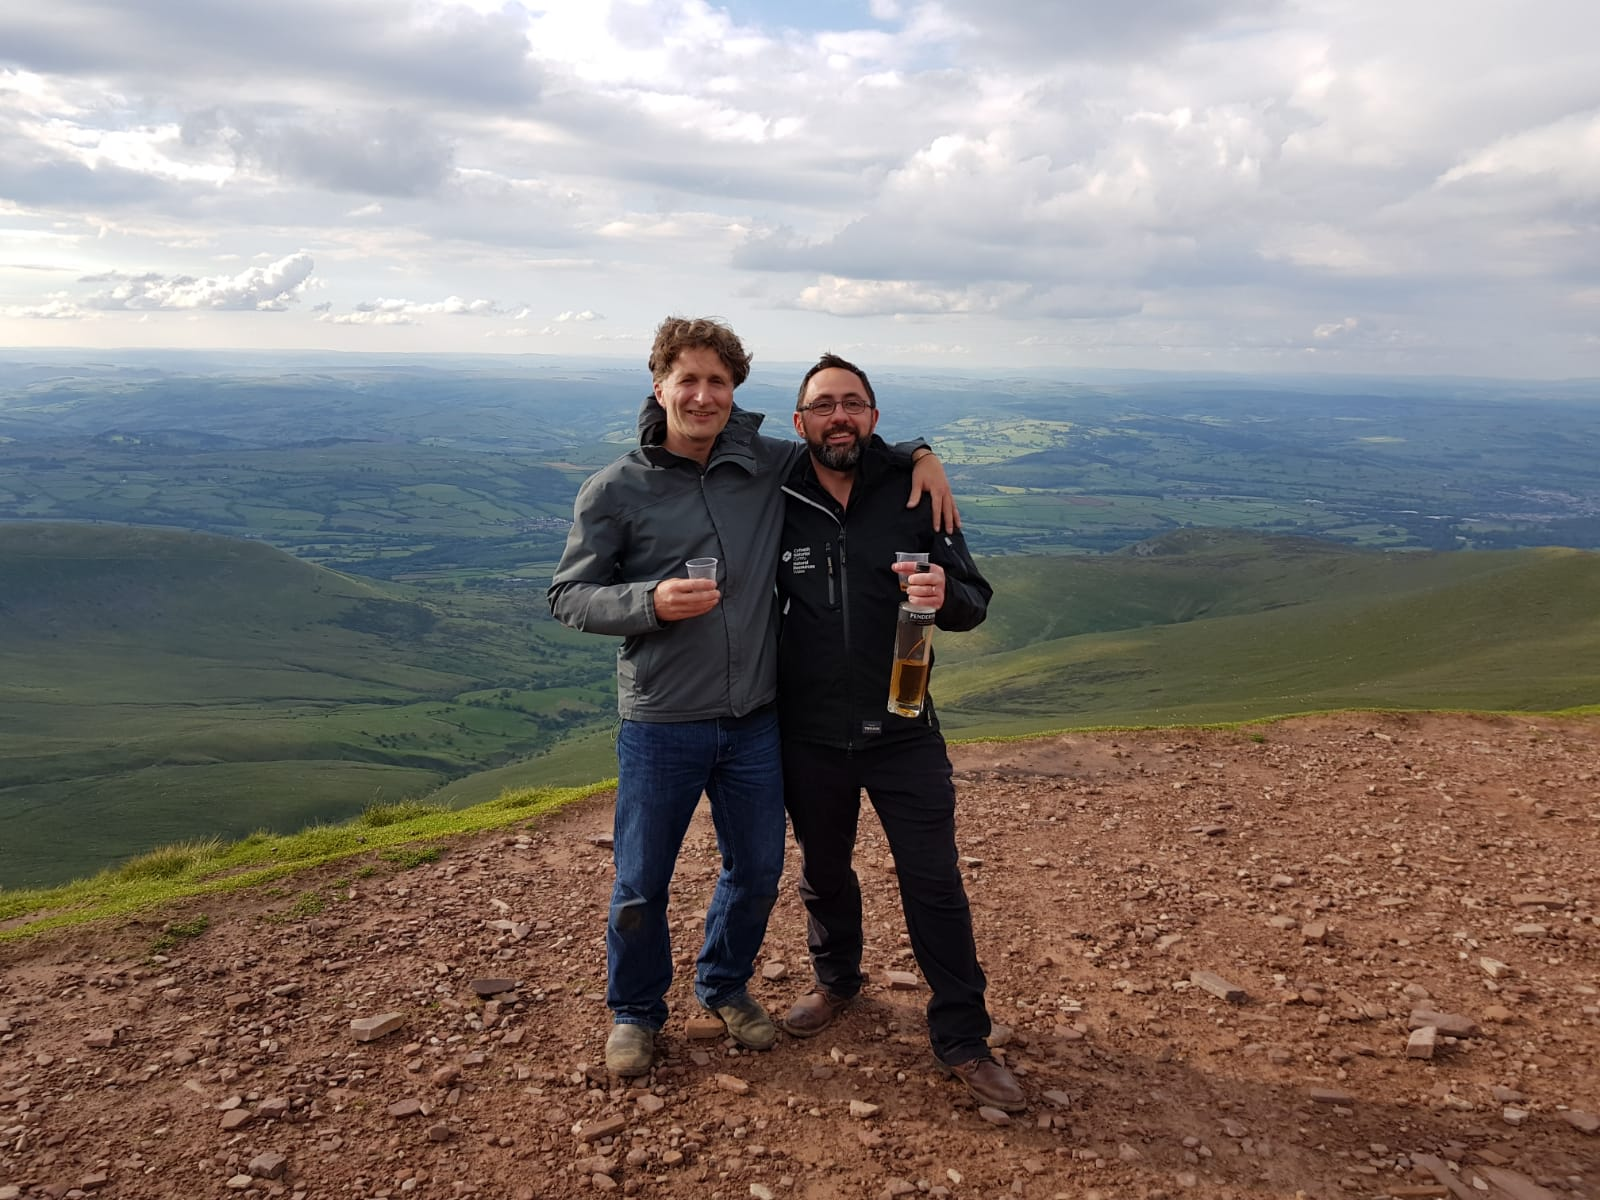 Paul Griffith And I Testing The Theory That Whisky Has A Stronger Affect At Altitude And With Friends